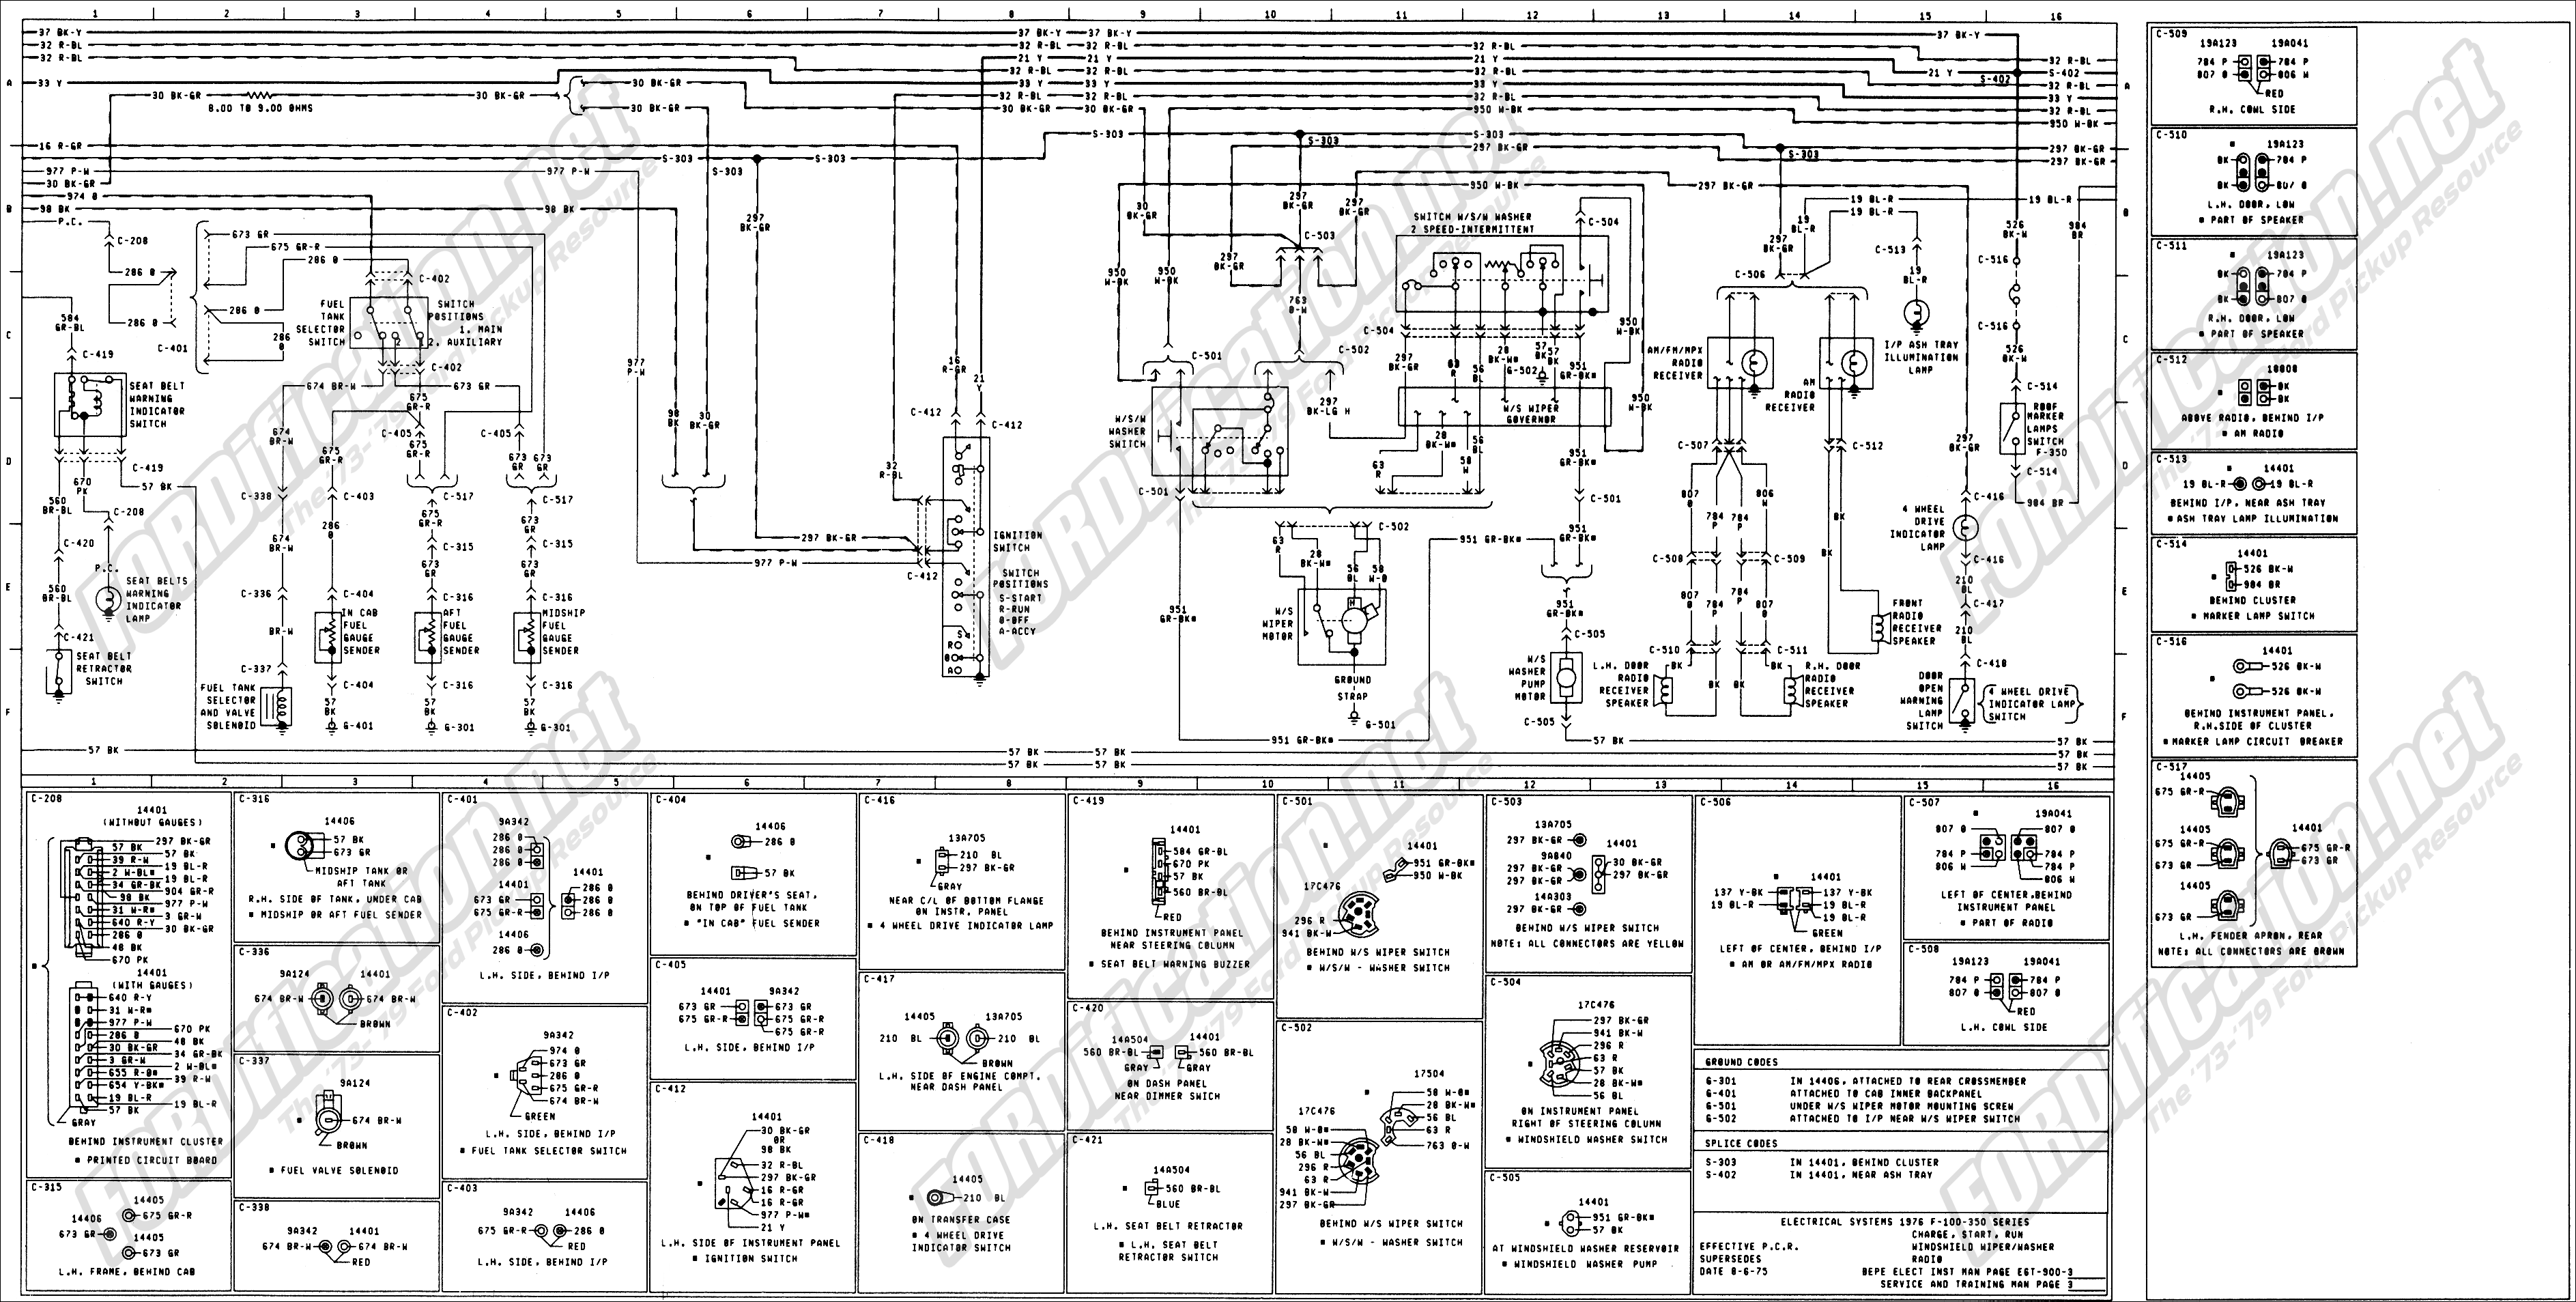 Ford F250 Wiring Diagram Schemes 2004 Honda Civic Electrical 1973 1979 Truck Diagrams Schematics Fordification Net 1990 F 250